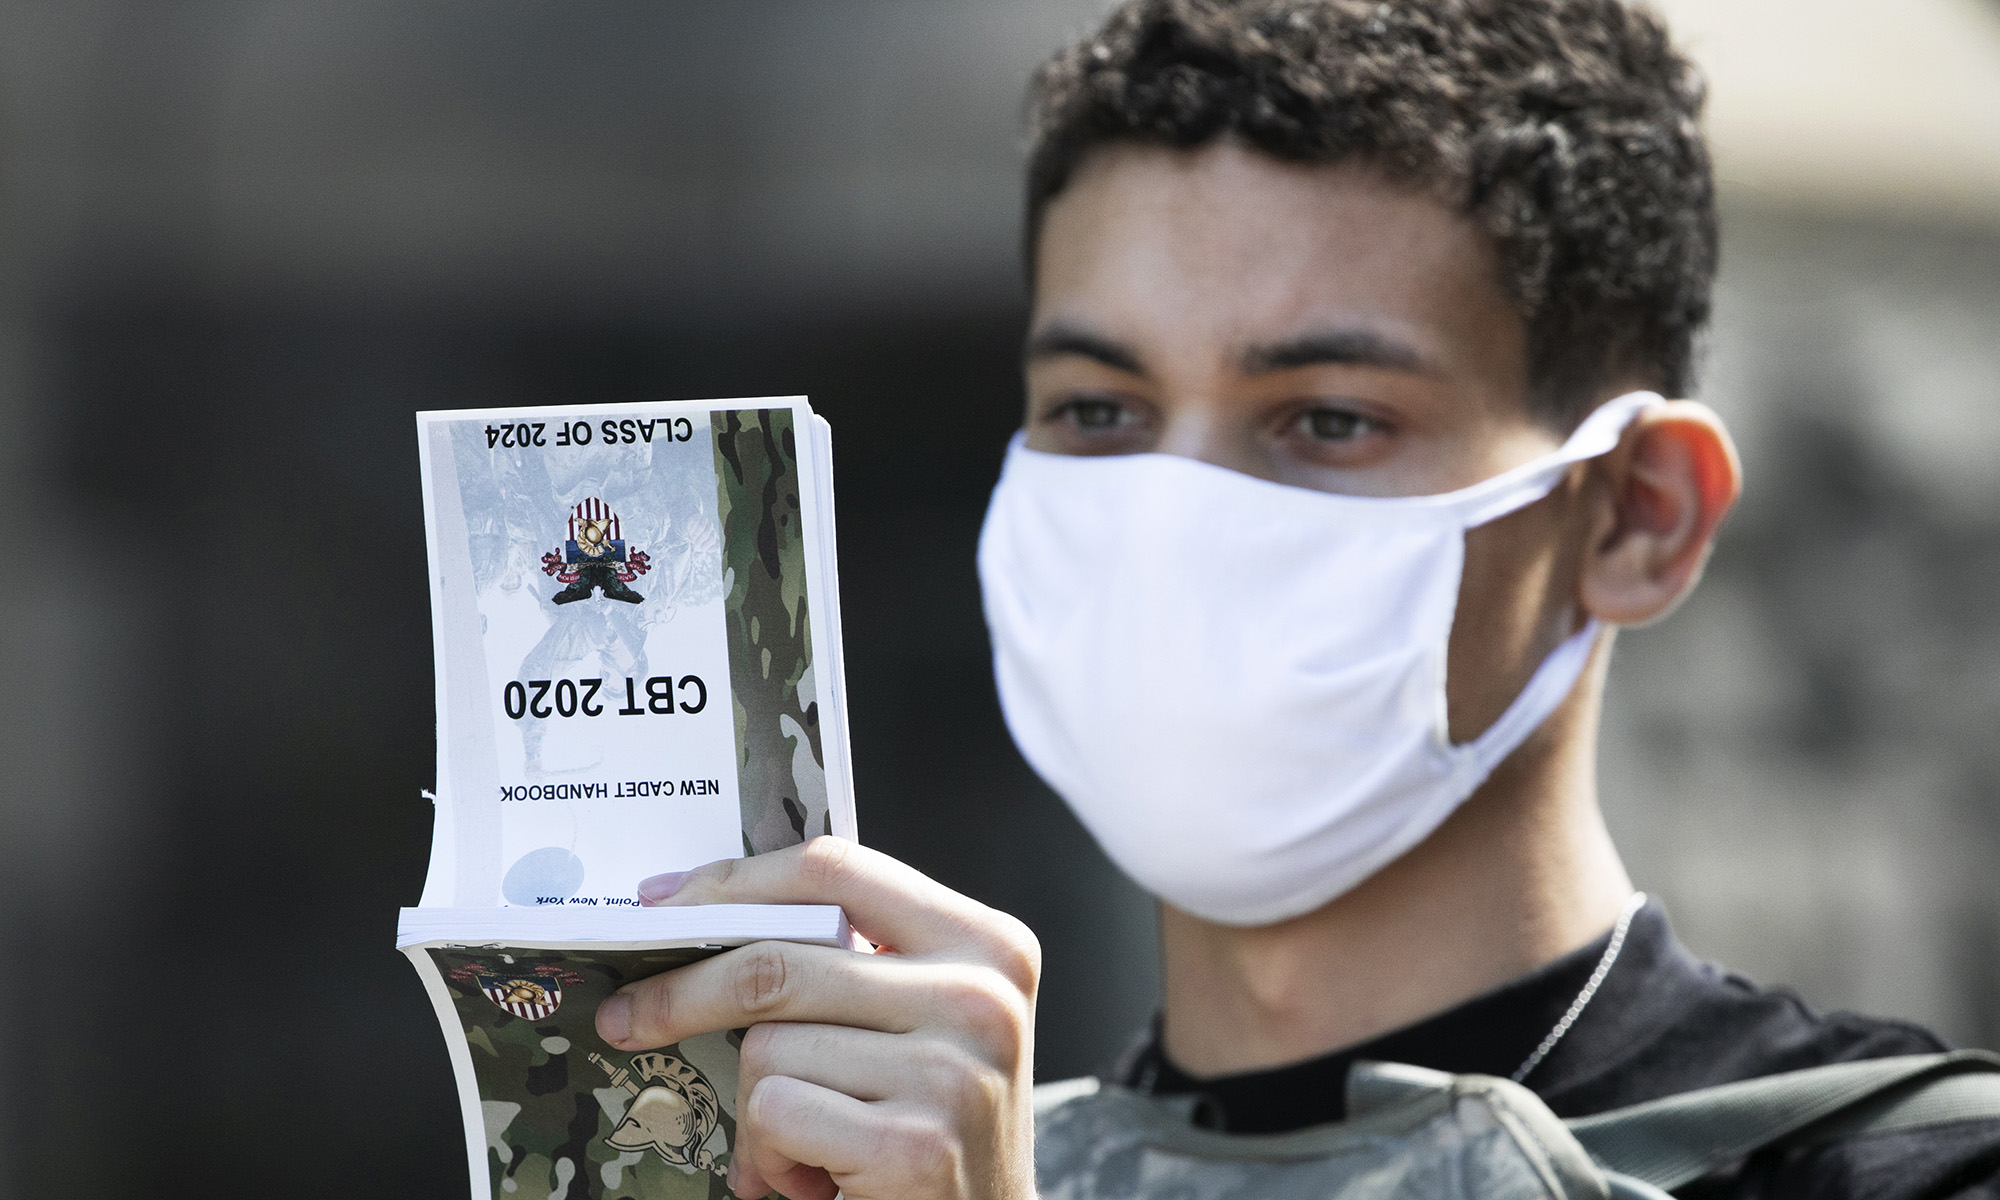 A West Point cadet reads the New Cadet Handbook on his first day at the U.S. Military Academy on July 13, 2020, in West Point, N.Y. The Army is welcoming more than 1,200 candidates from every state. Candidates will be COVID-19 tested immediately upon arrival, wear masks, and practice social distancing. (Mark Lennihan/AP)